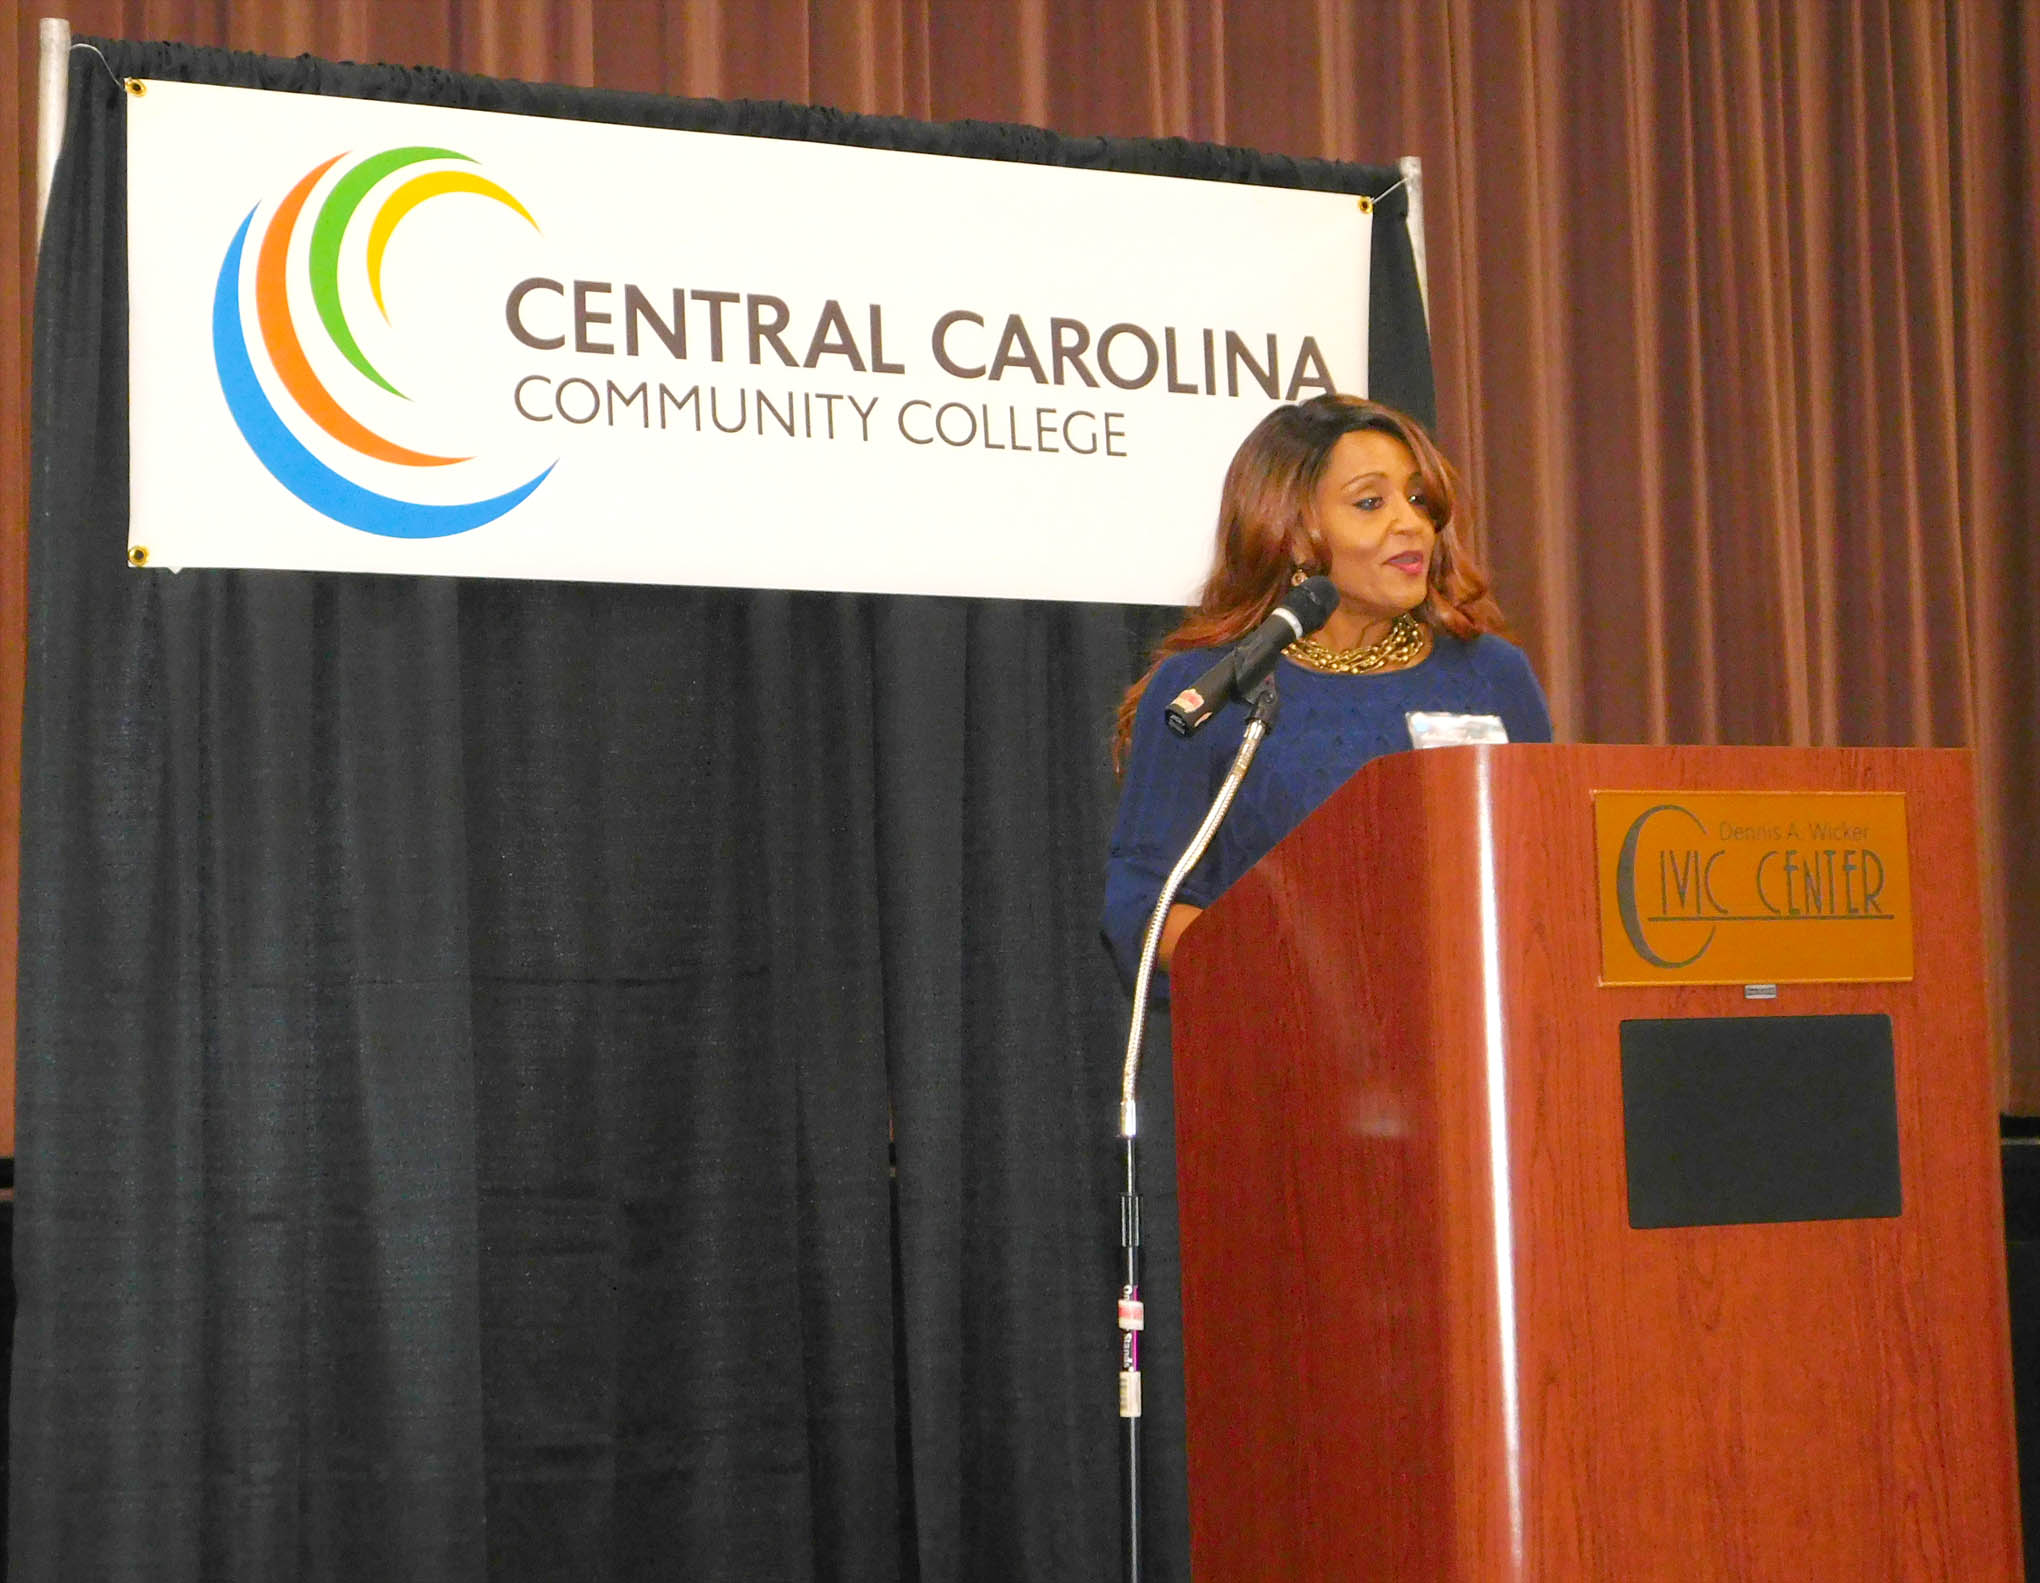 Click to enlarge,  Tammy Alexander was the student speaker at Central Carolina Community College's Scholarship Luncheon on Wednesday, Nov. 15, at the Dennis A. Wicker Civic Center.